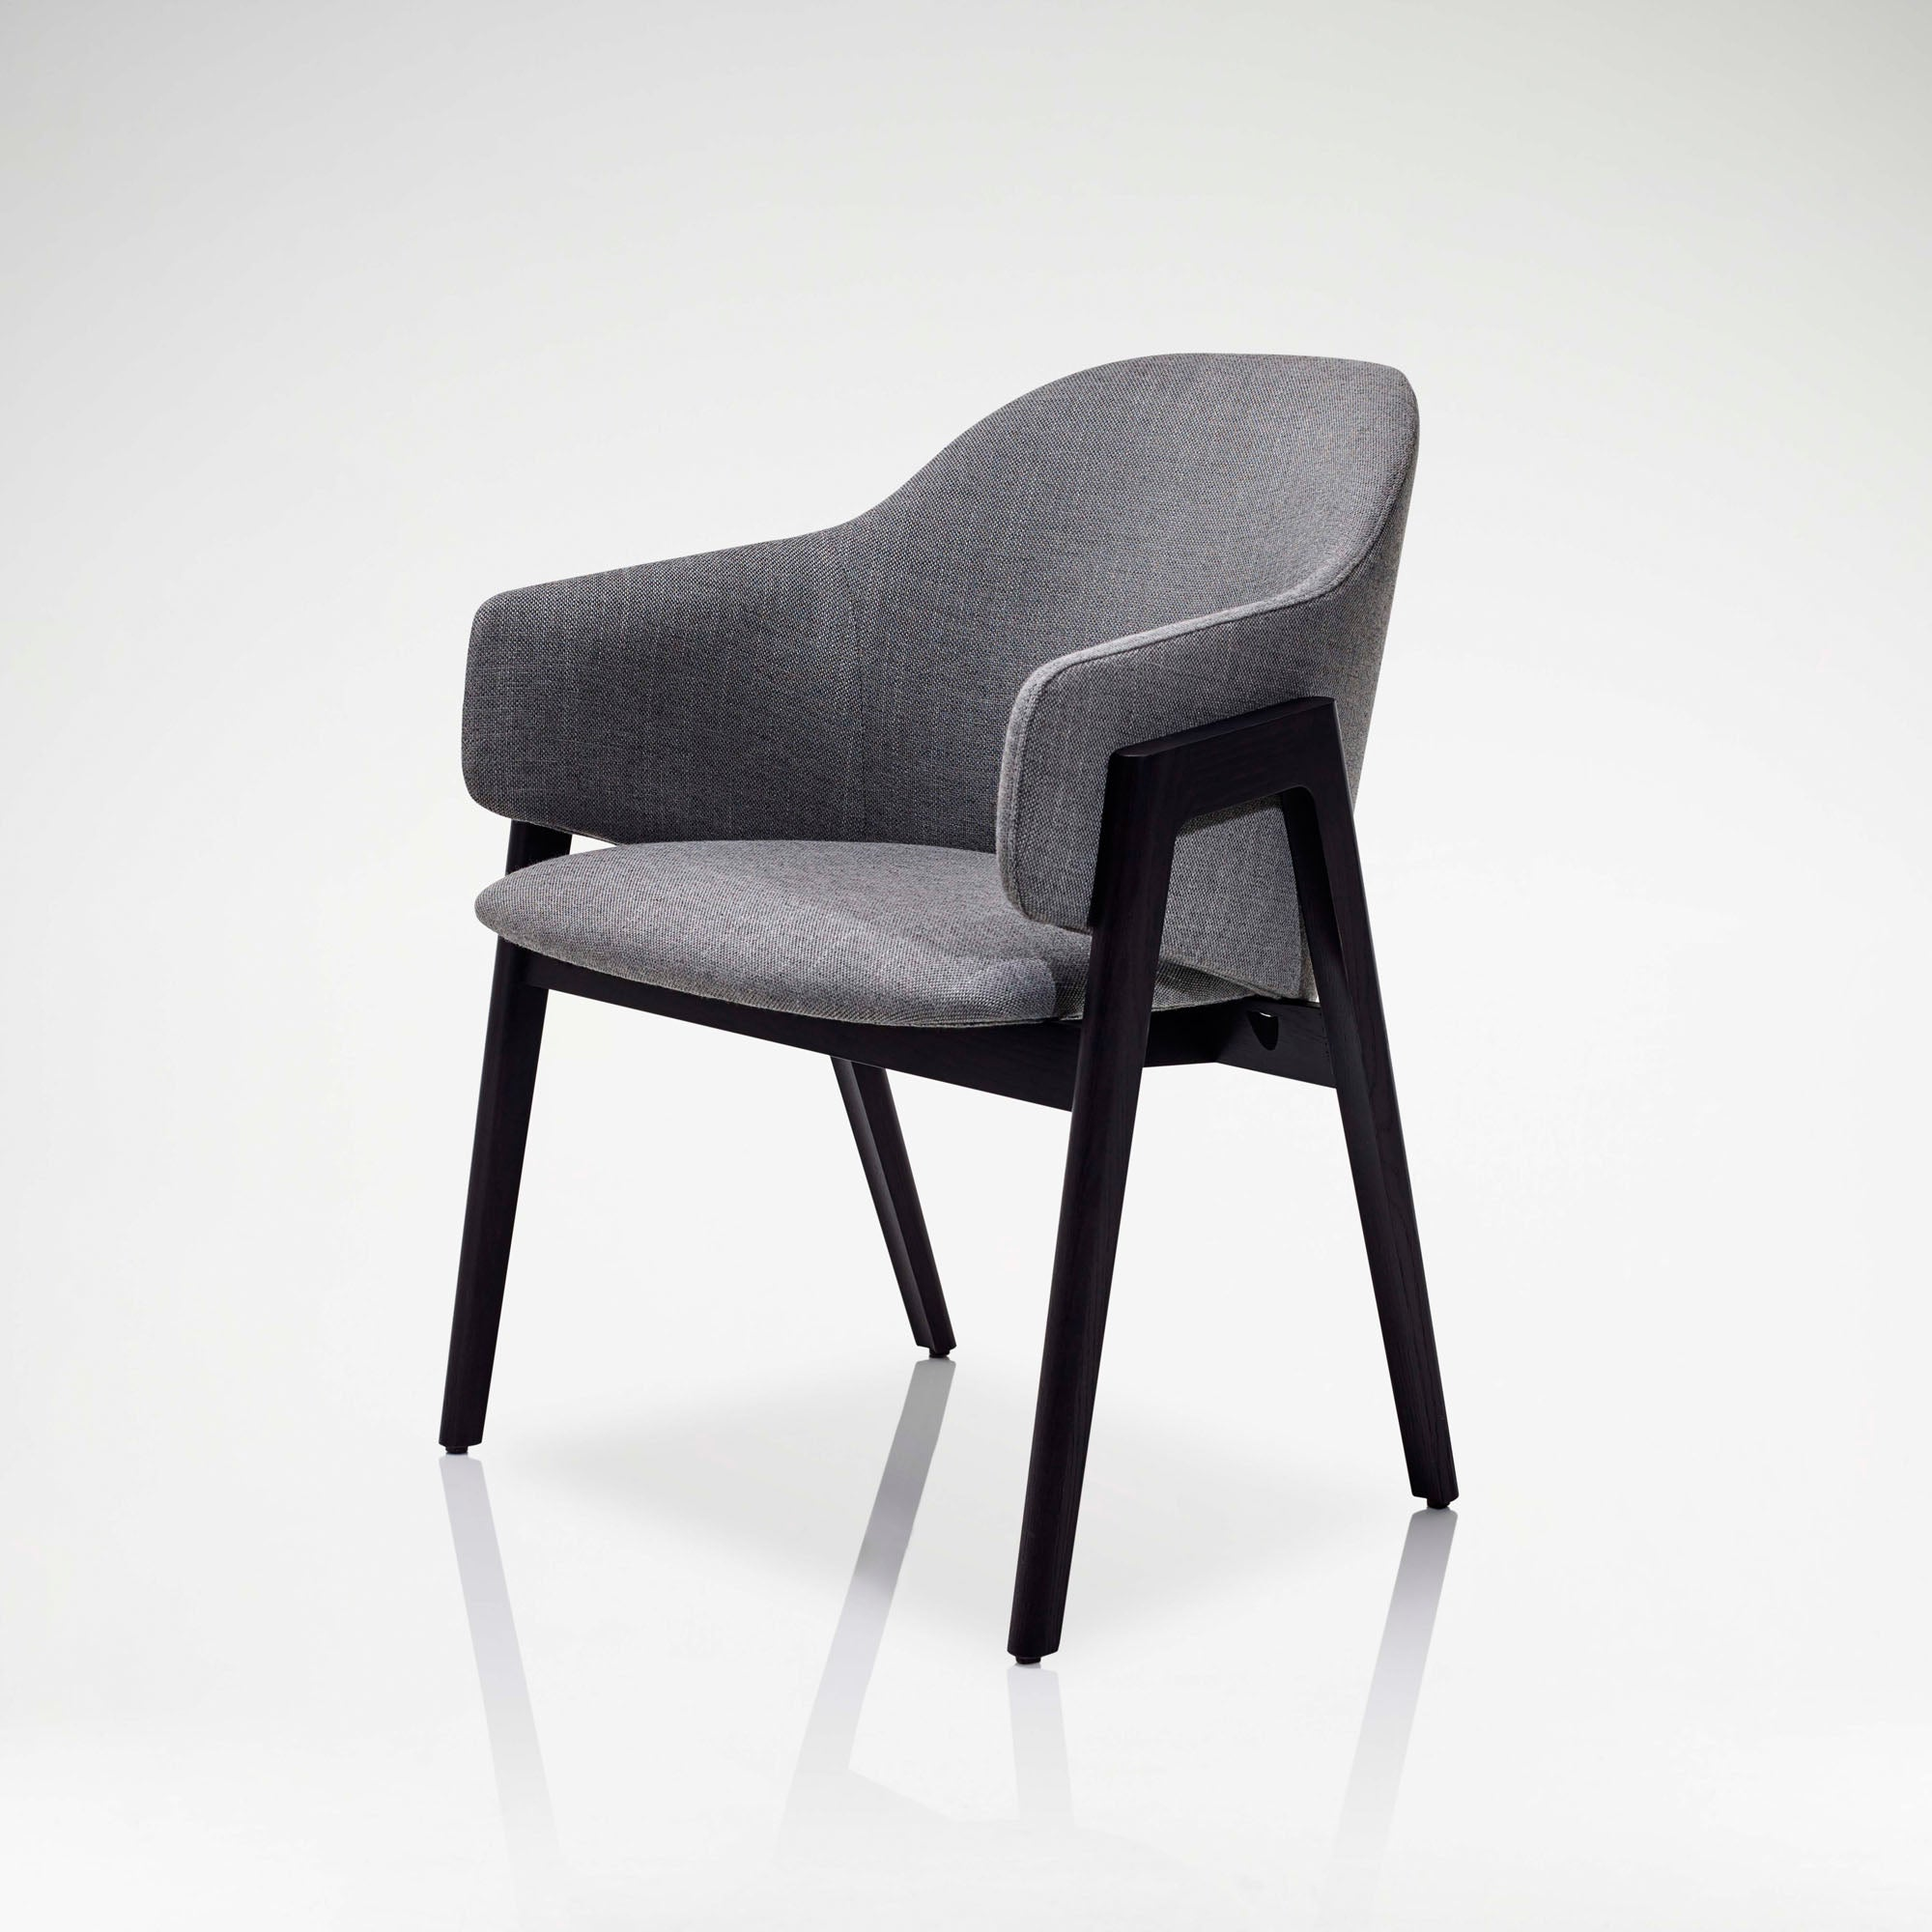 Savile Dining Chair - Dove